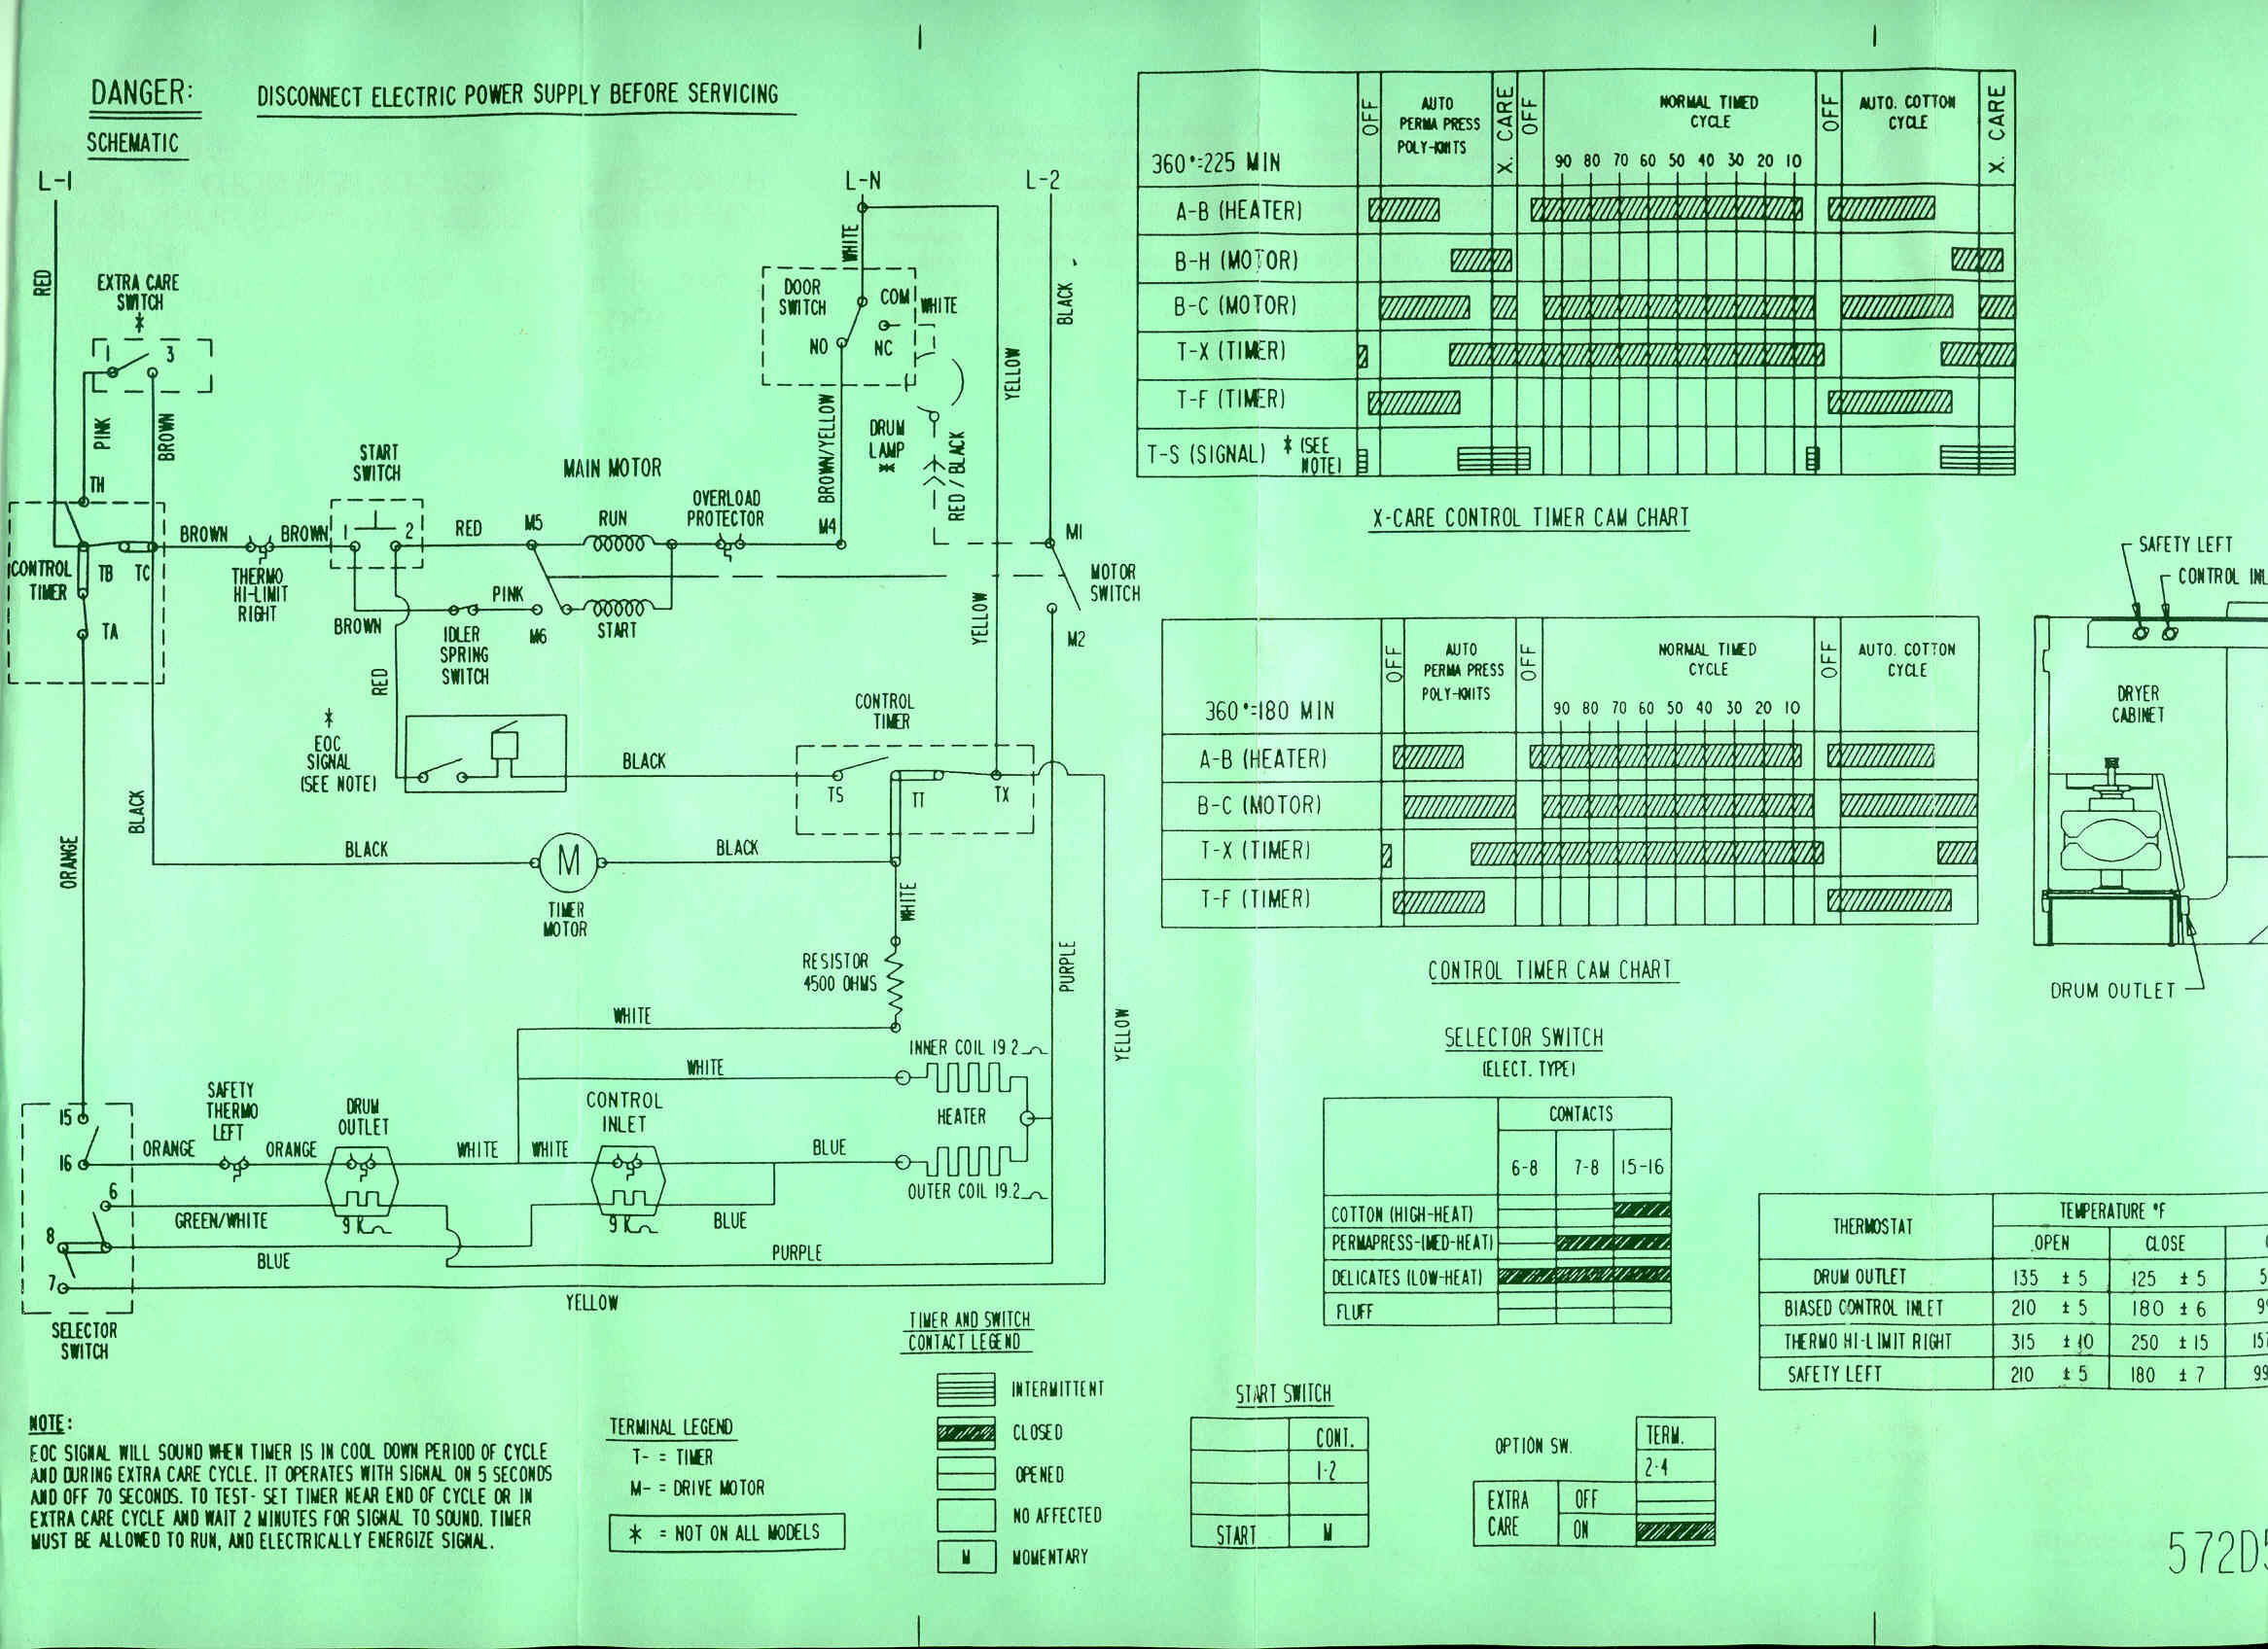 Ge Sensor Dryer Timer Wiring Diagram | Wiring Diagram - Ge Dryer Timer Wiring Diagram